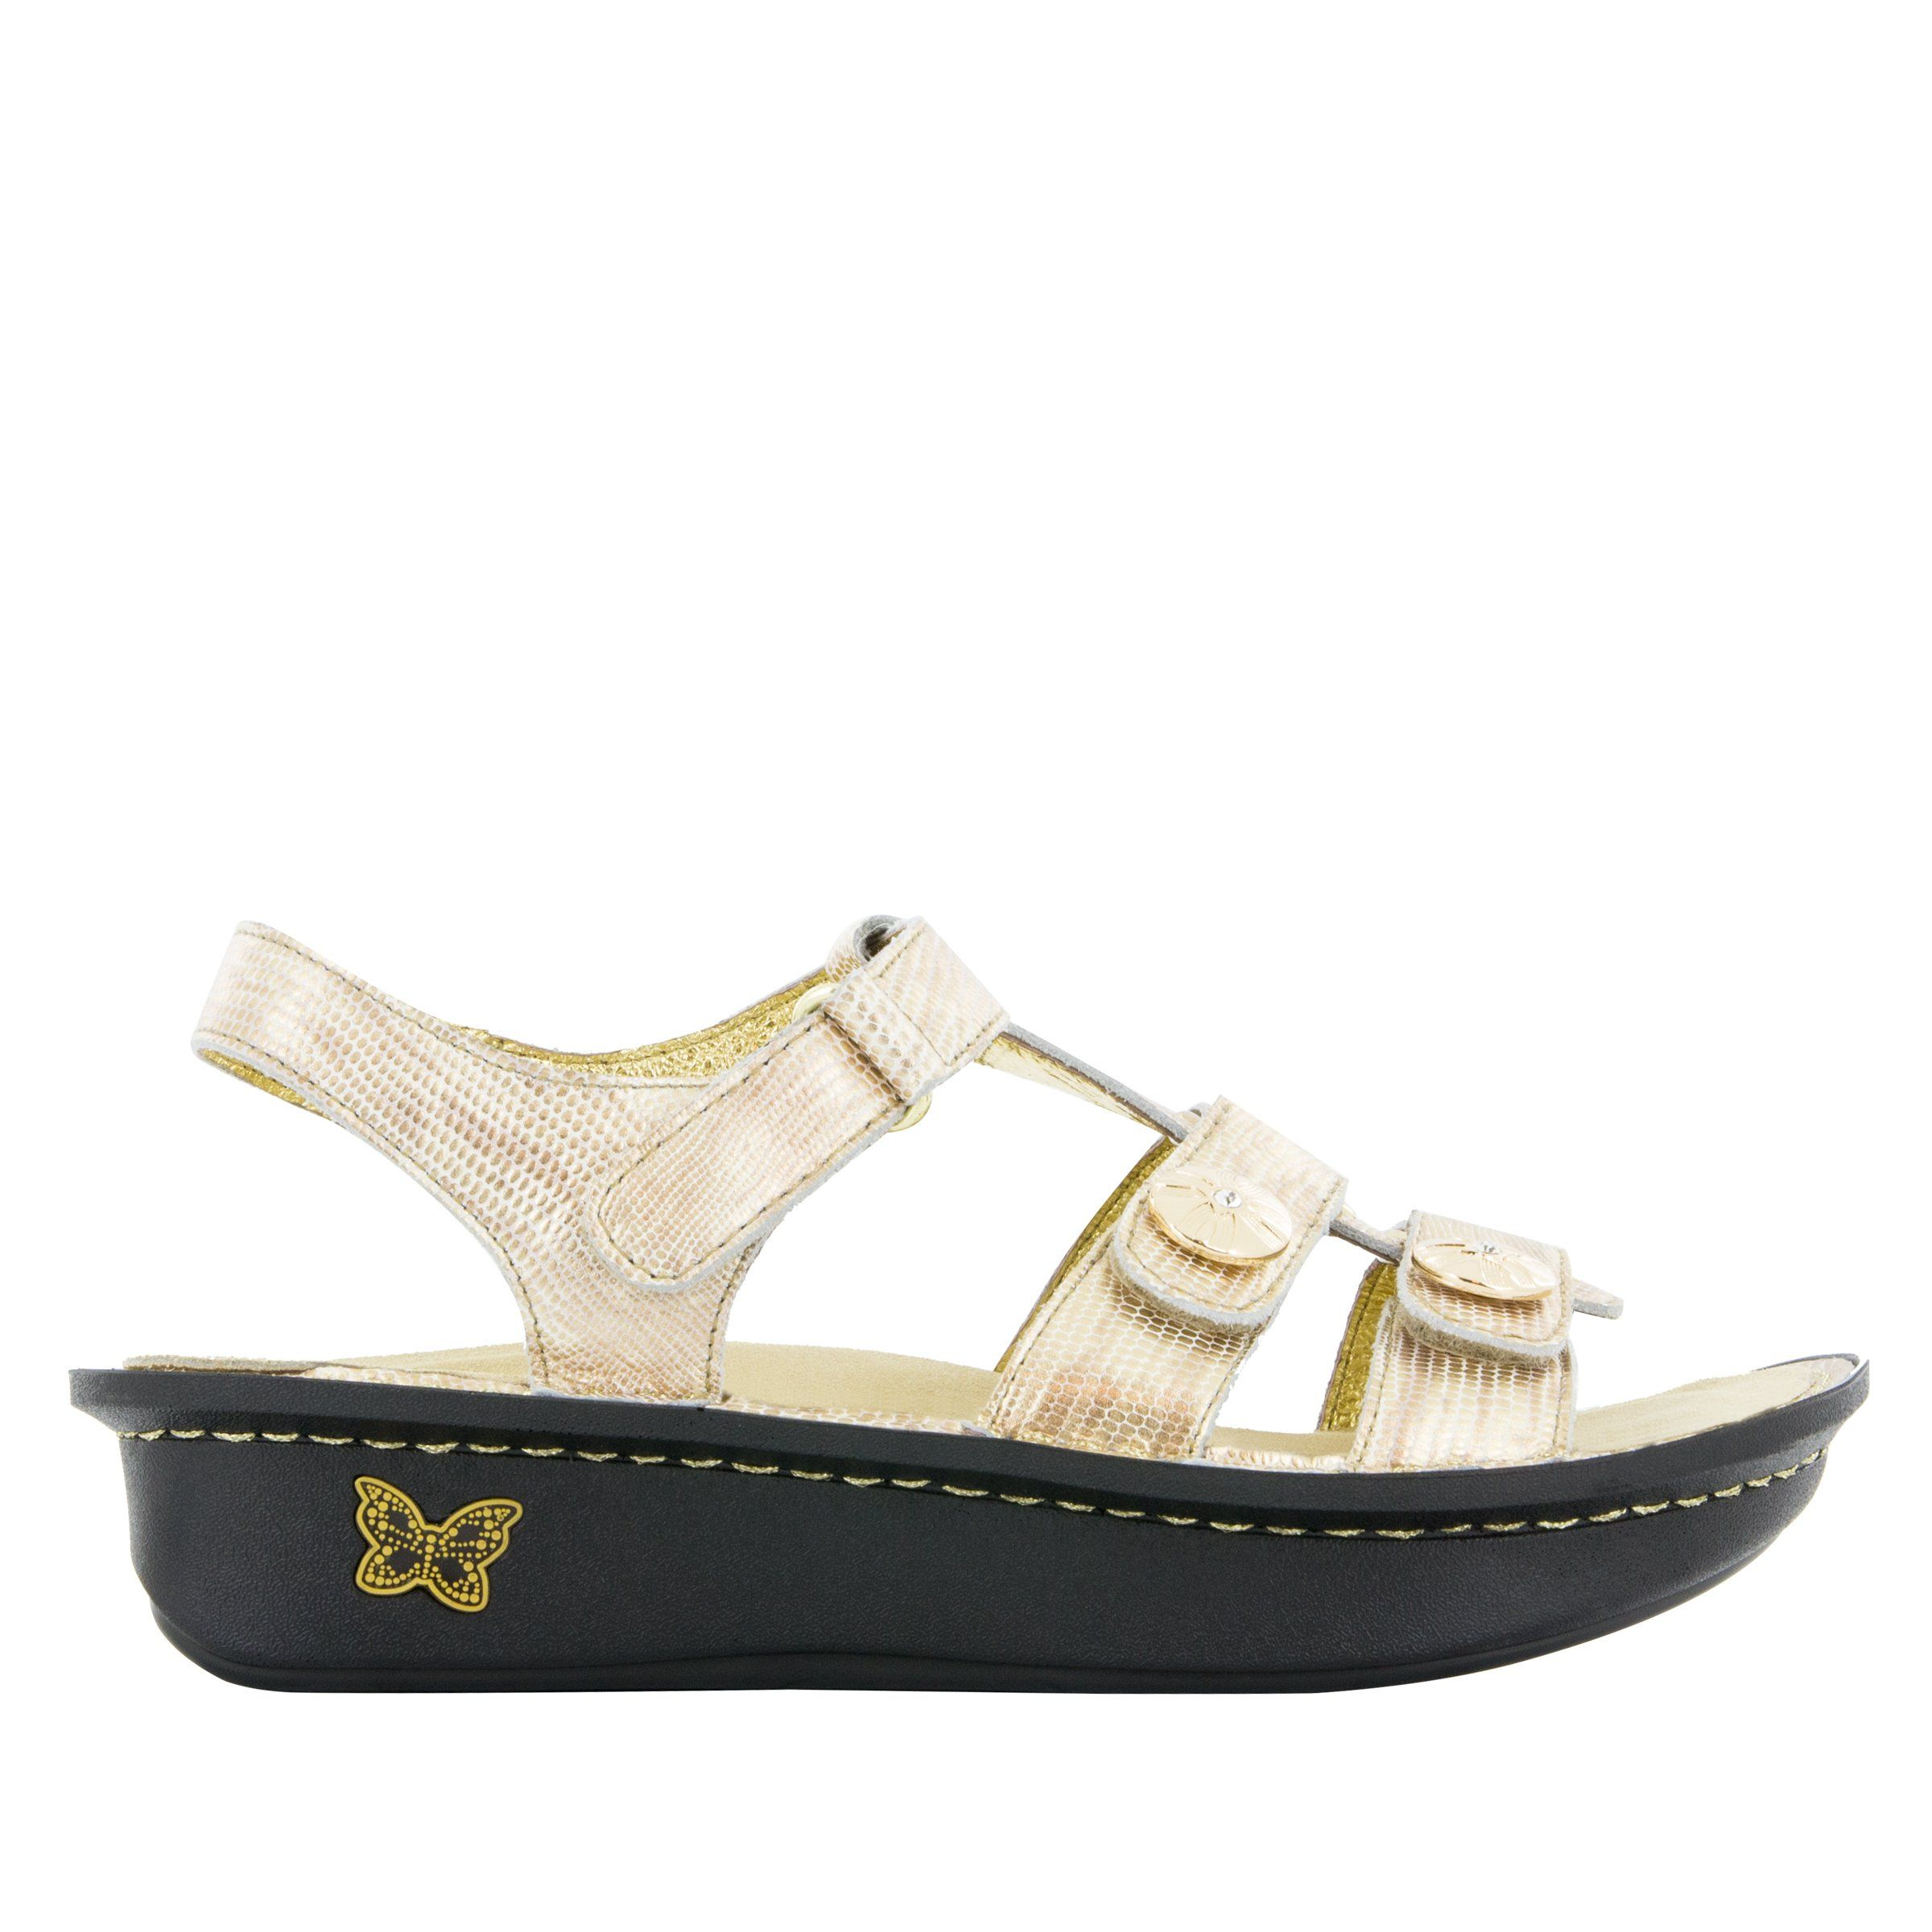 684c4ef0f6a381 Kleo Gold Your Own Way Sandal